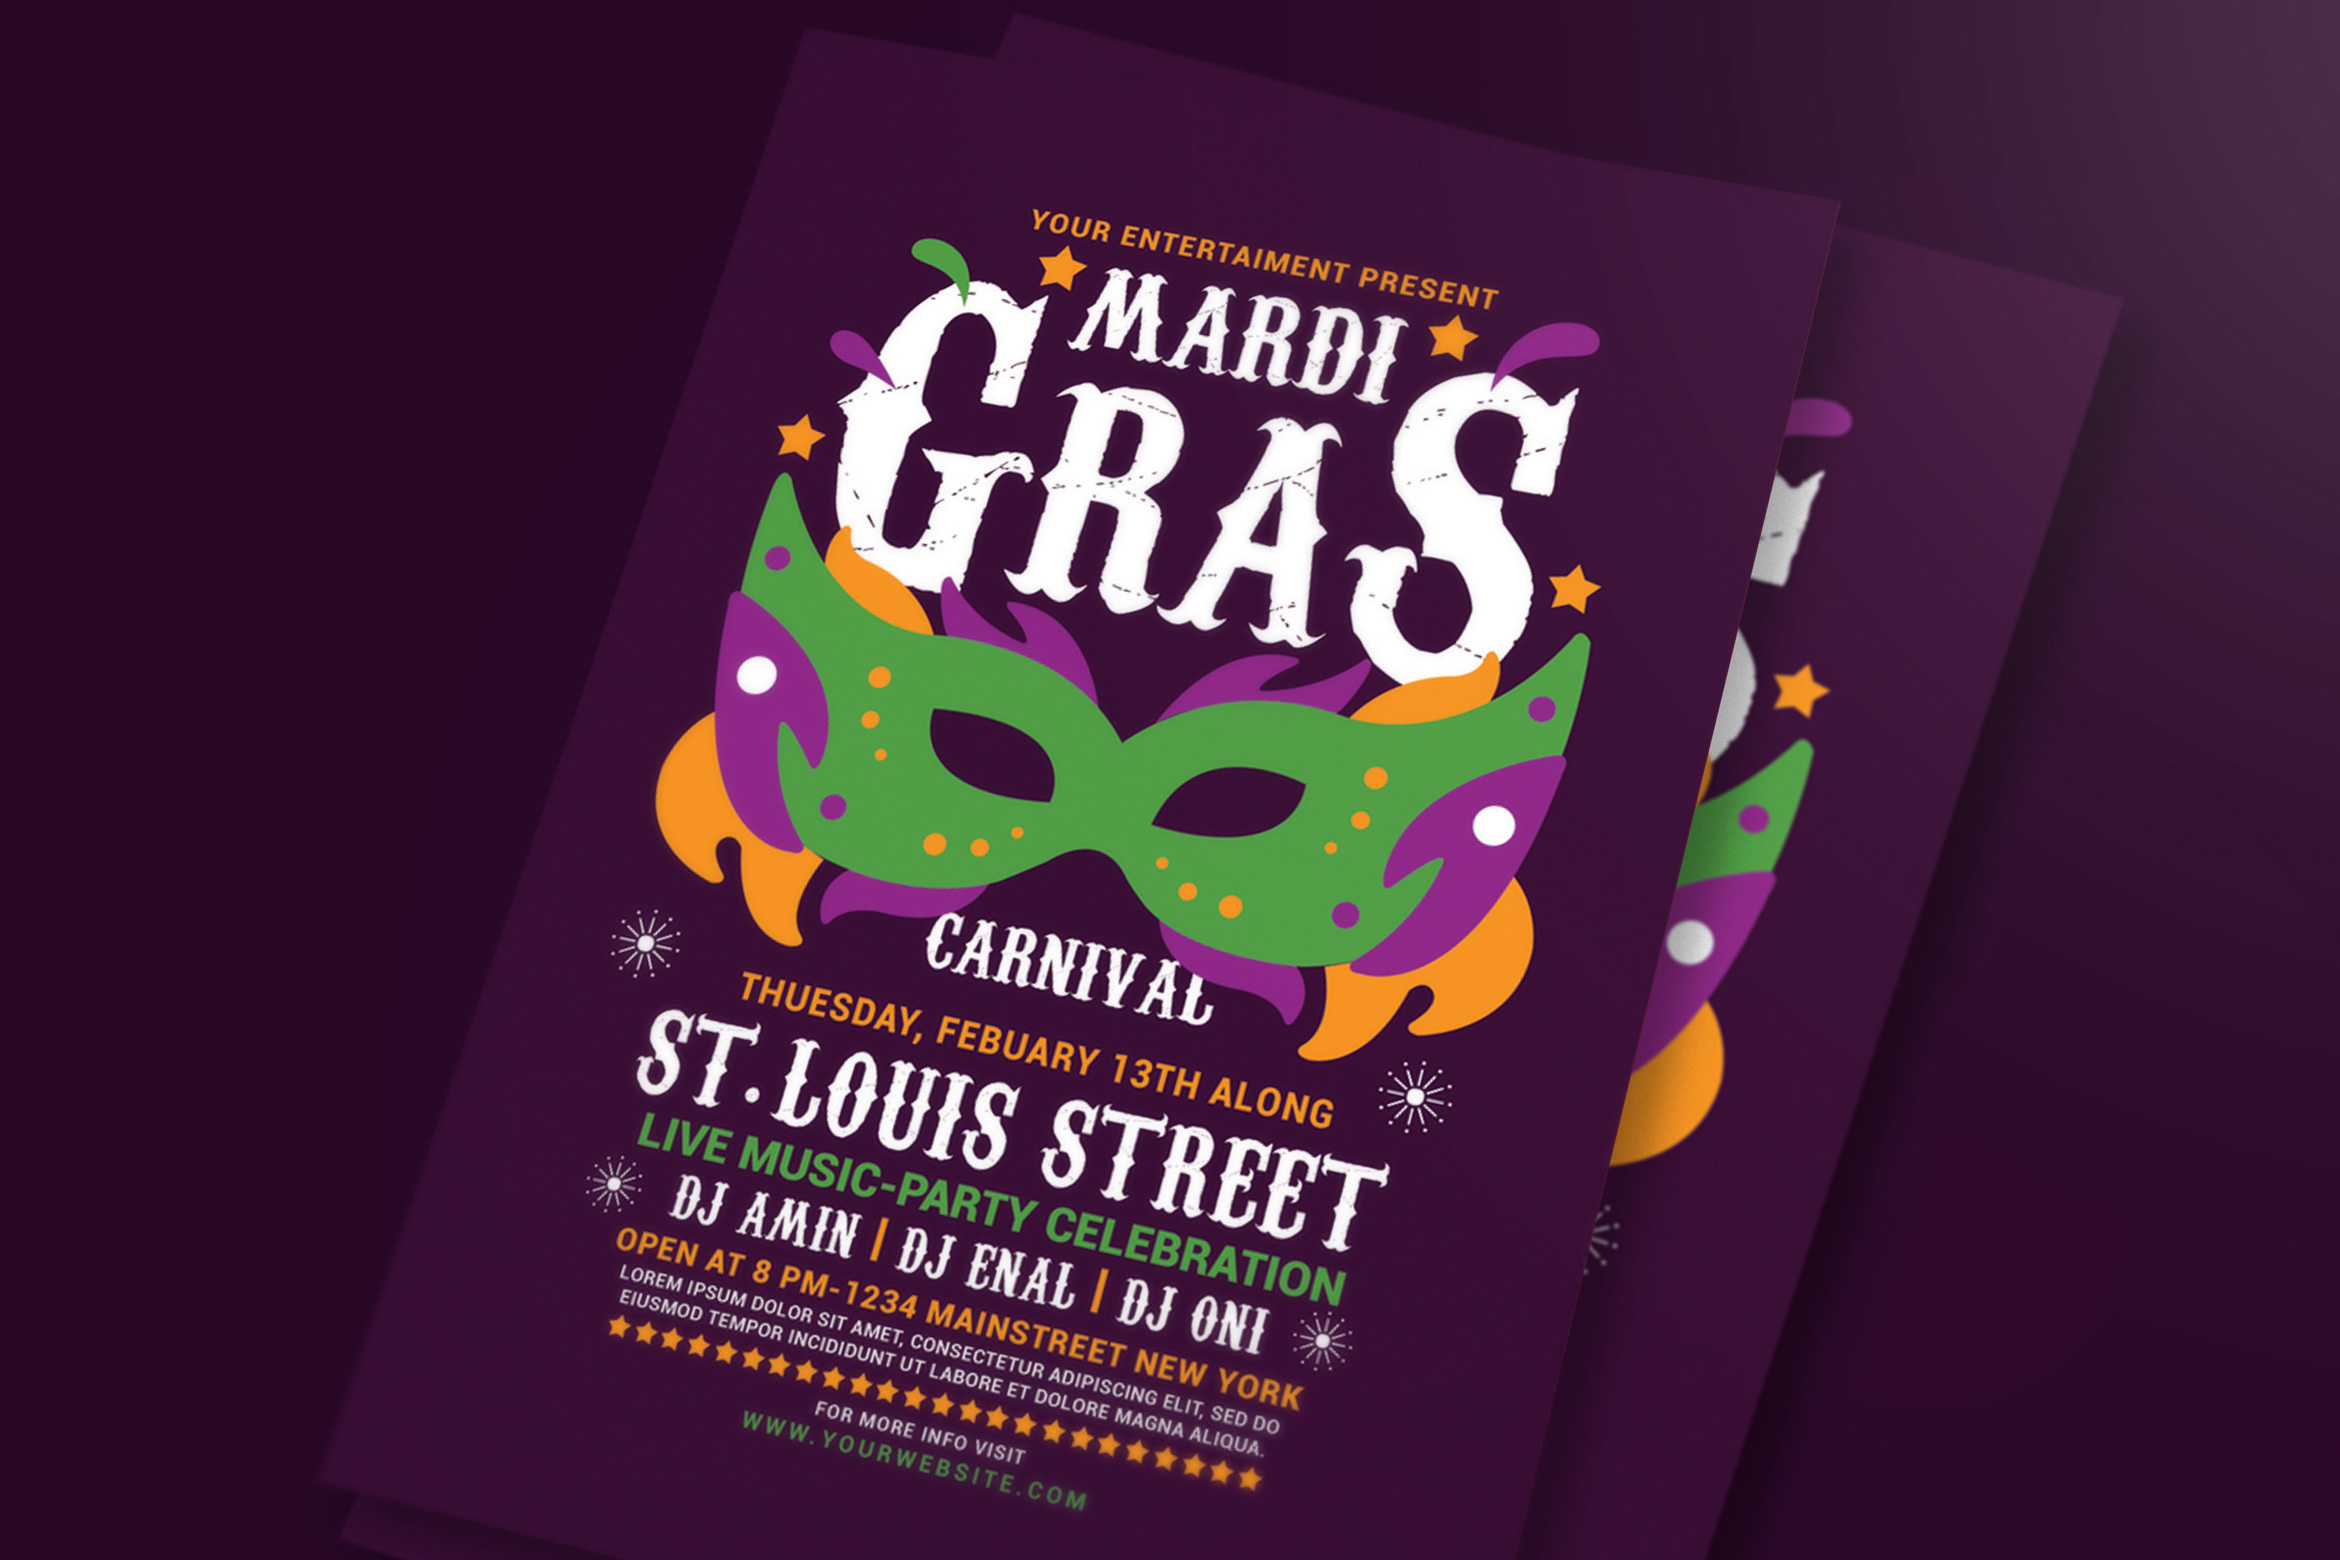 Download Free Mardi Gras Flyer Template Graphic By Muhamadiqbalhidayat for Cricut Explore, Silhouette and other cutting machines.